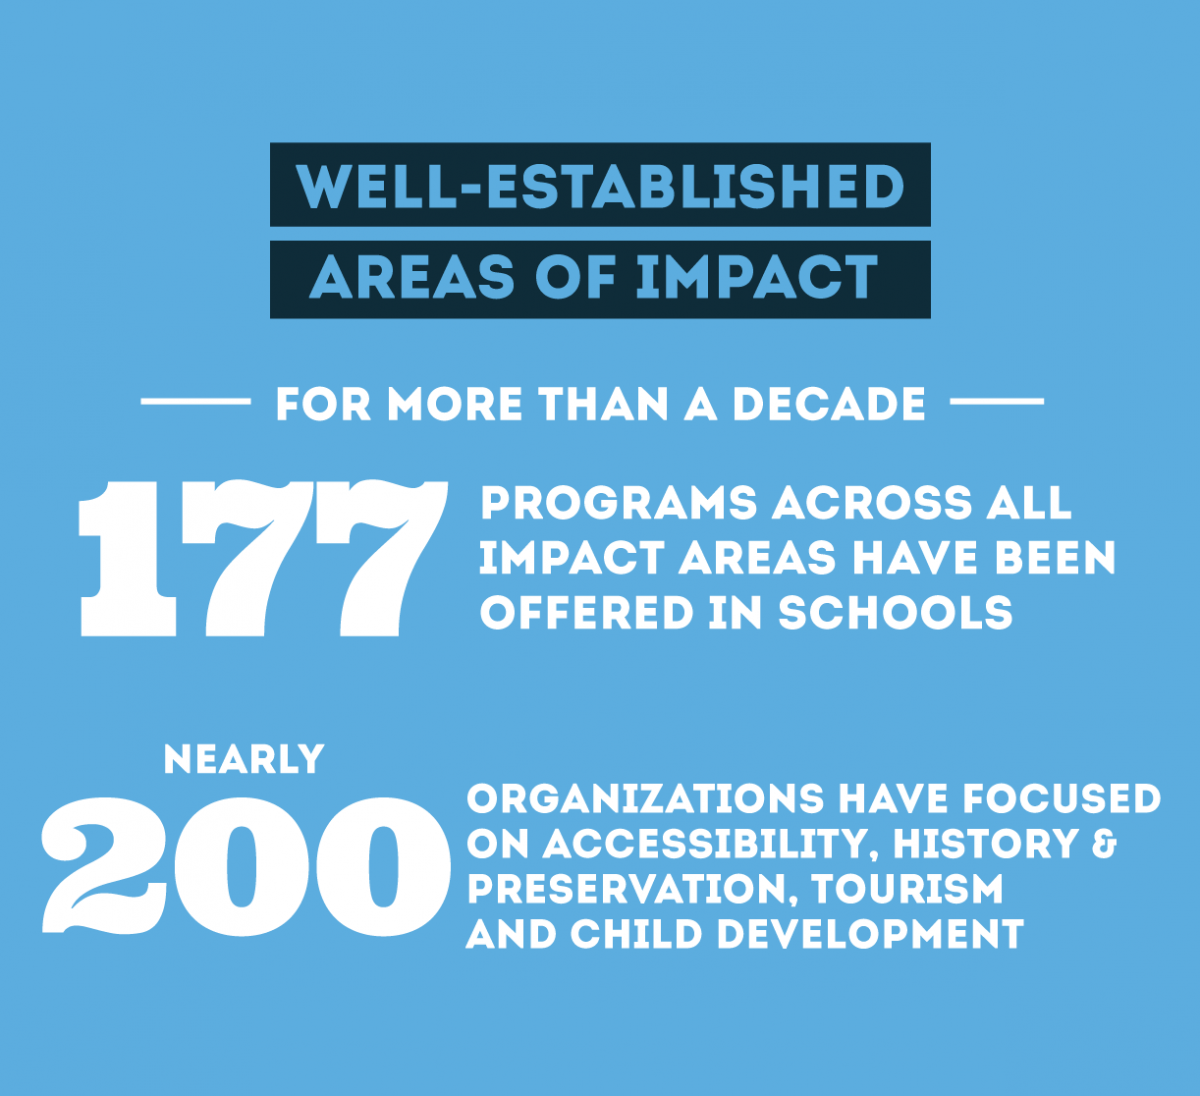 Well-Established areas of impact: for more than a decade 177 programs across all impact aras have been offered in schools and nearly 200 organizations have focused on accessibility, history, tourism and child development